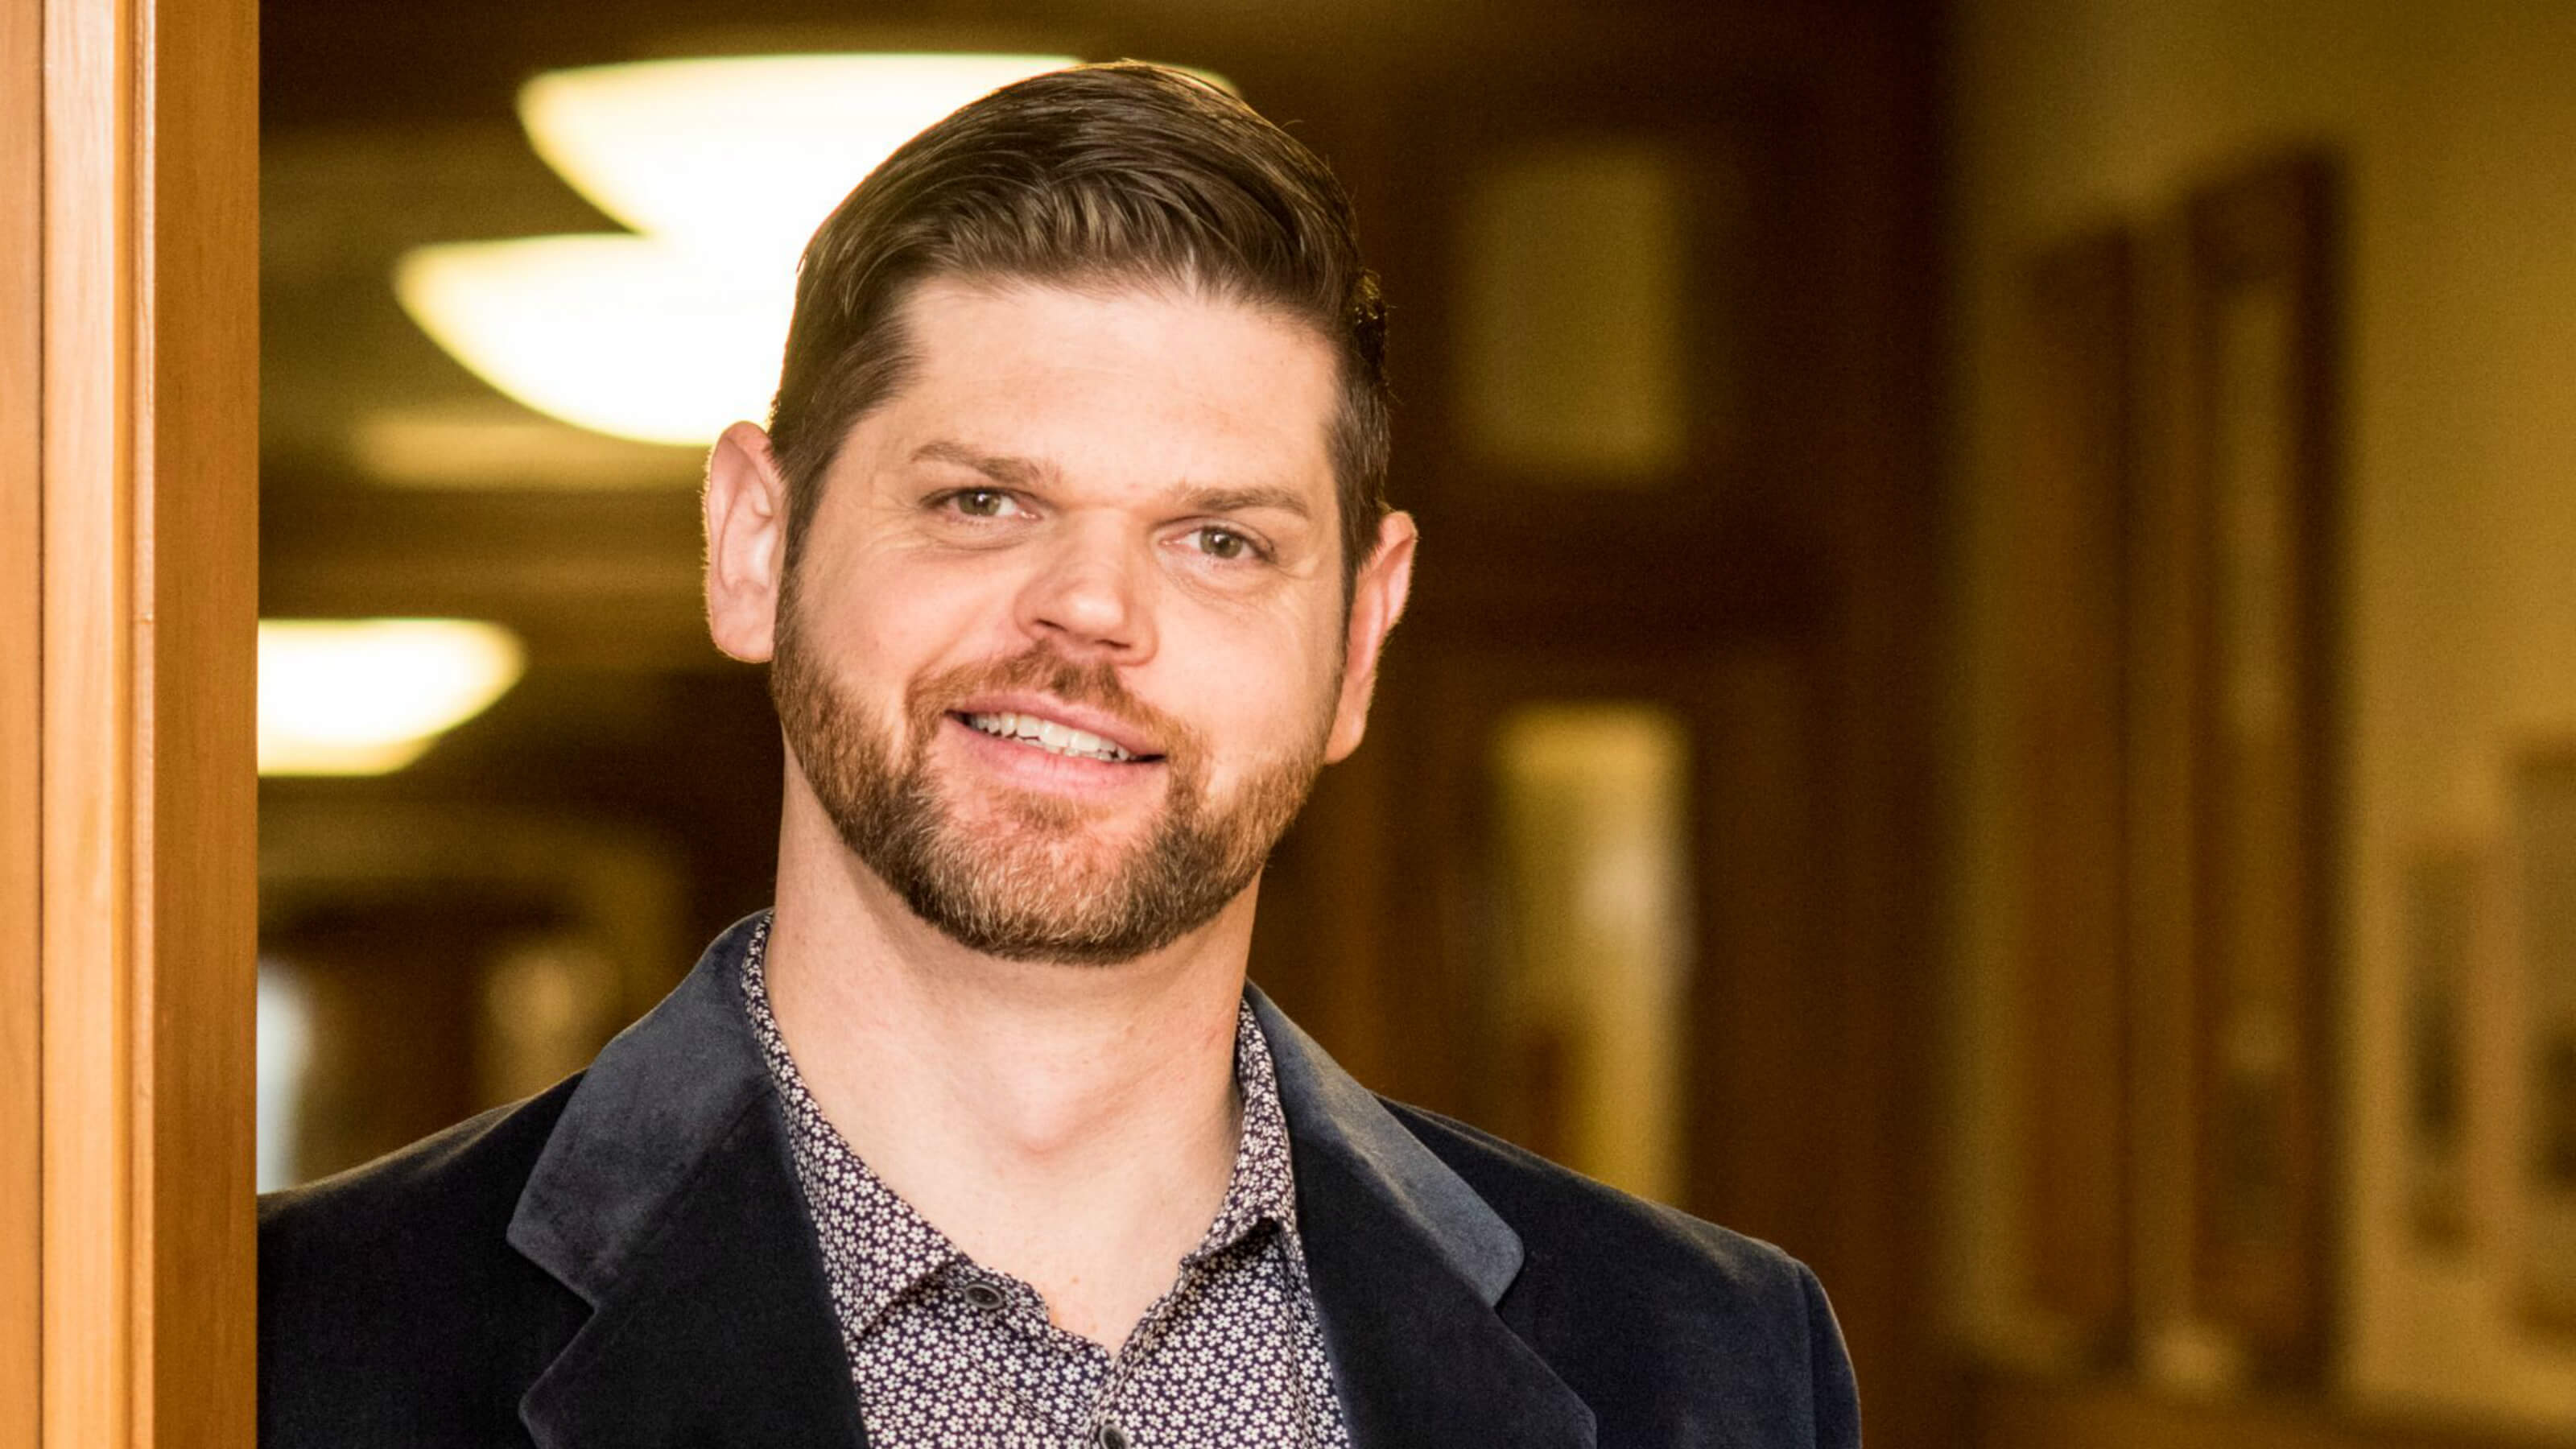 International Law PhD candidate Nathan Ross